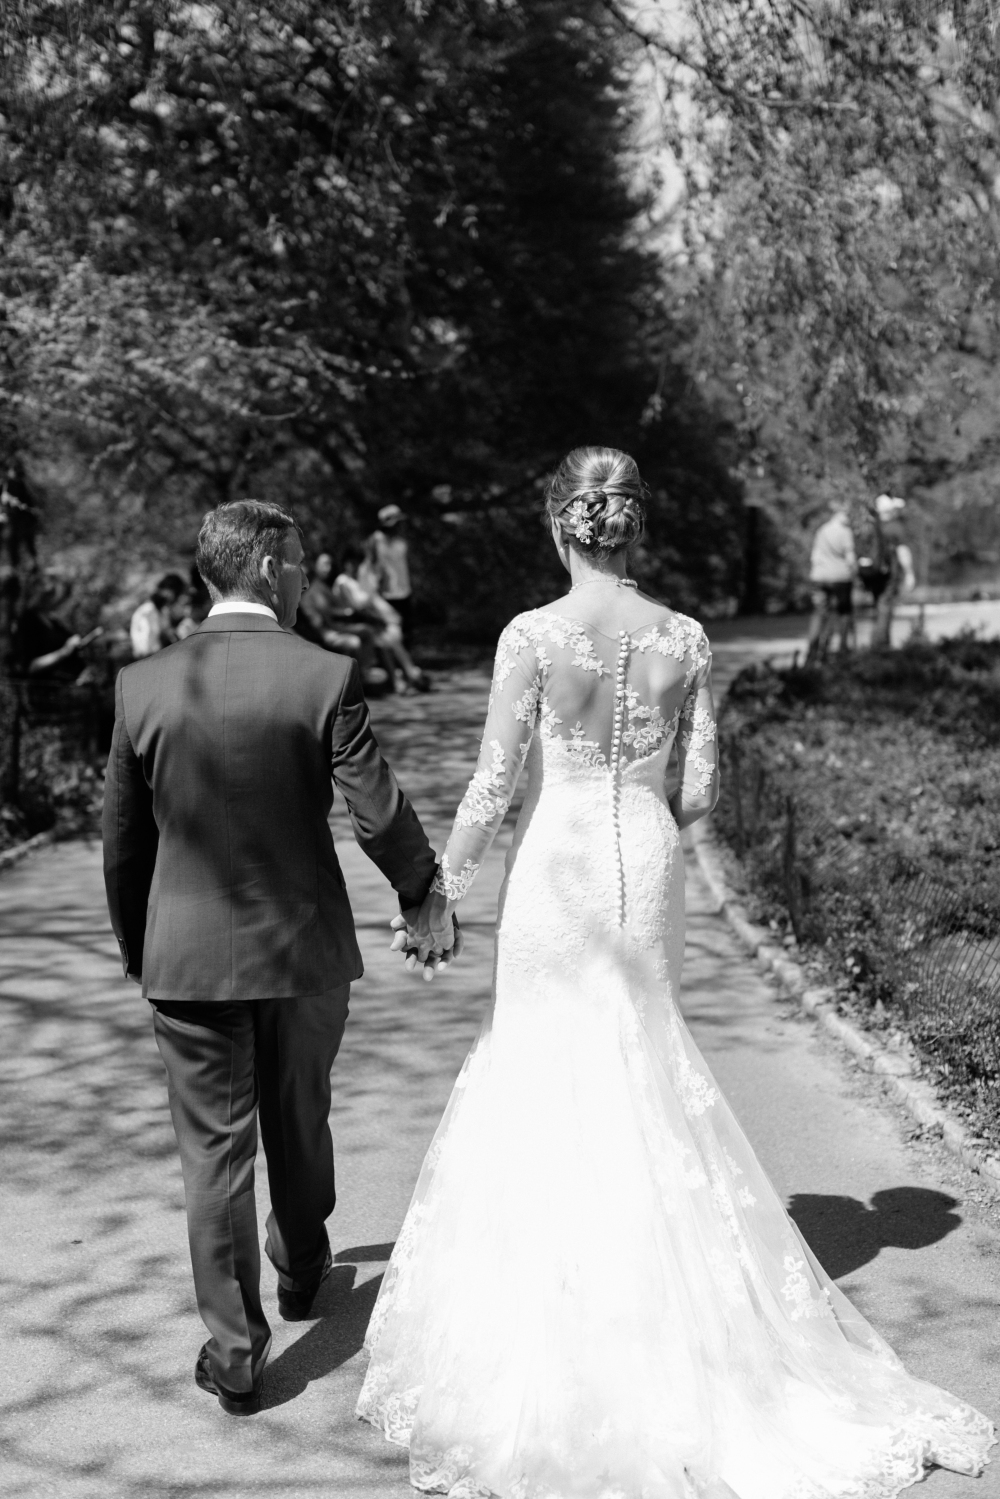 Wagner-cove-central-park-wedding-SS-209